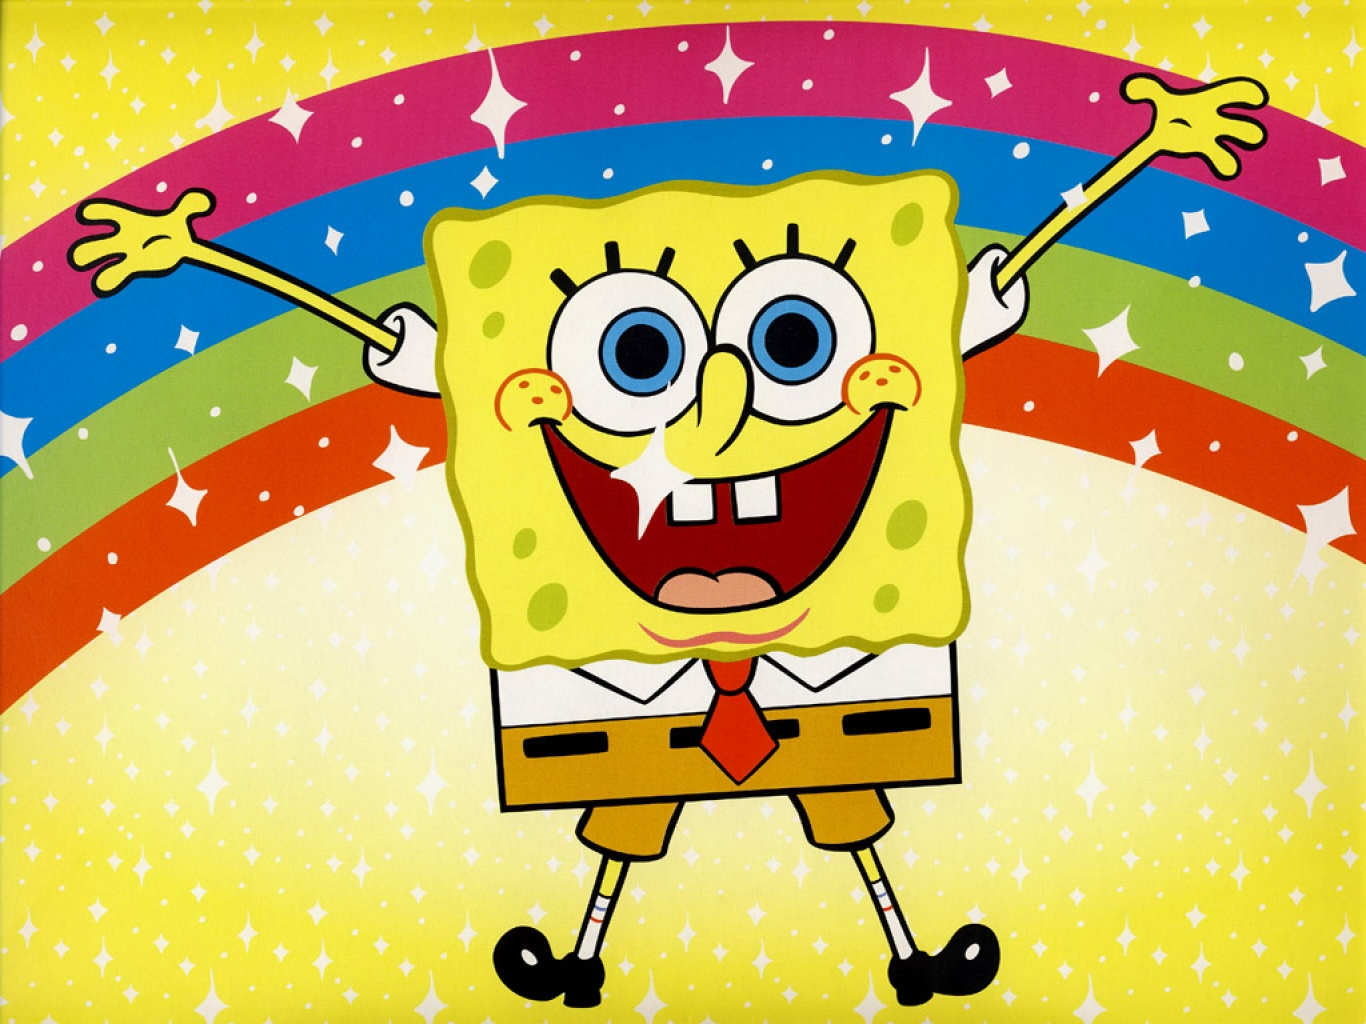 spongebob wallpaper 33804 1366x1024 px hdwallsource com